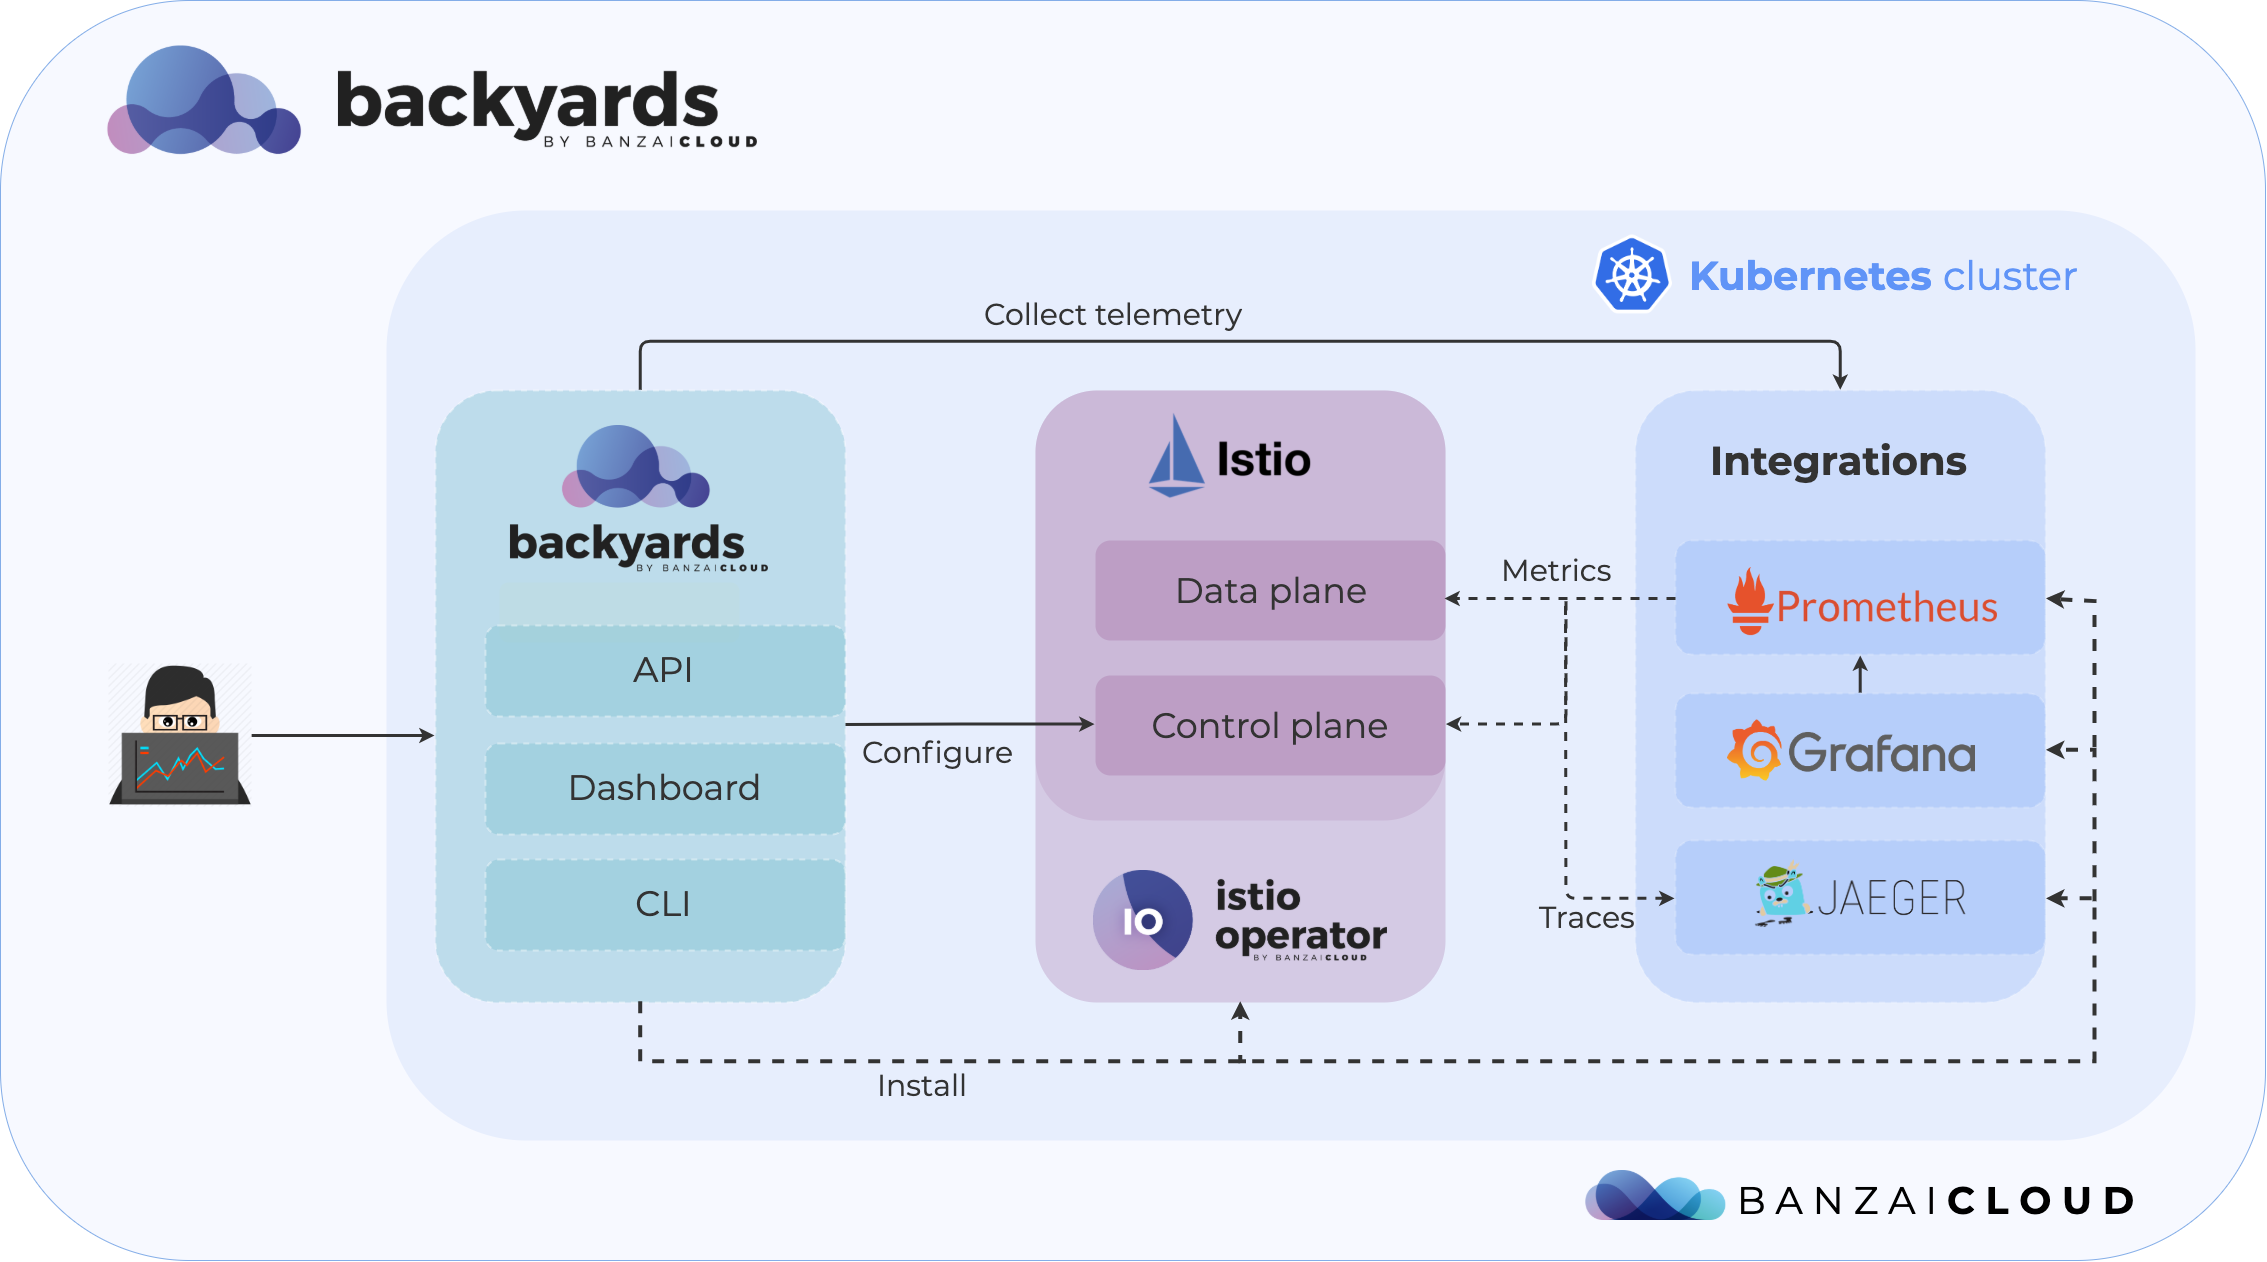 Banzai Cloud Backyards service mesh built on Istio schematics